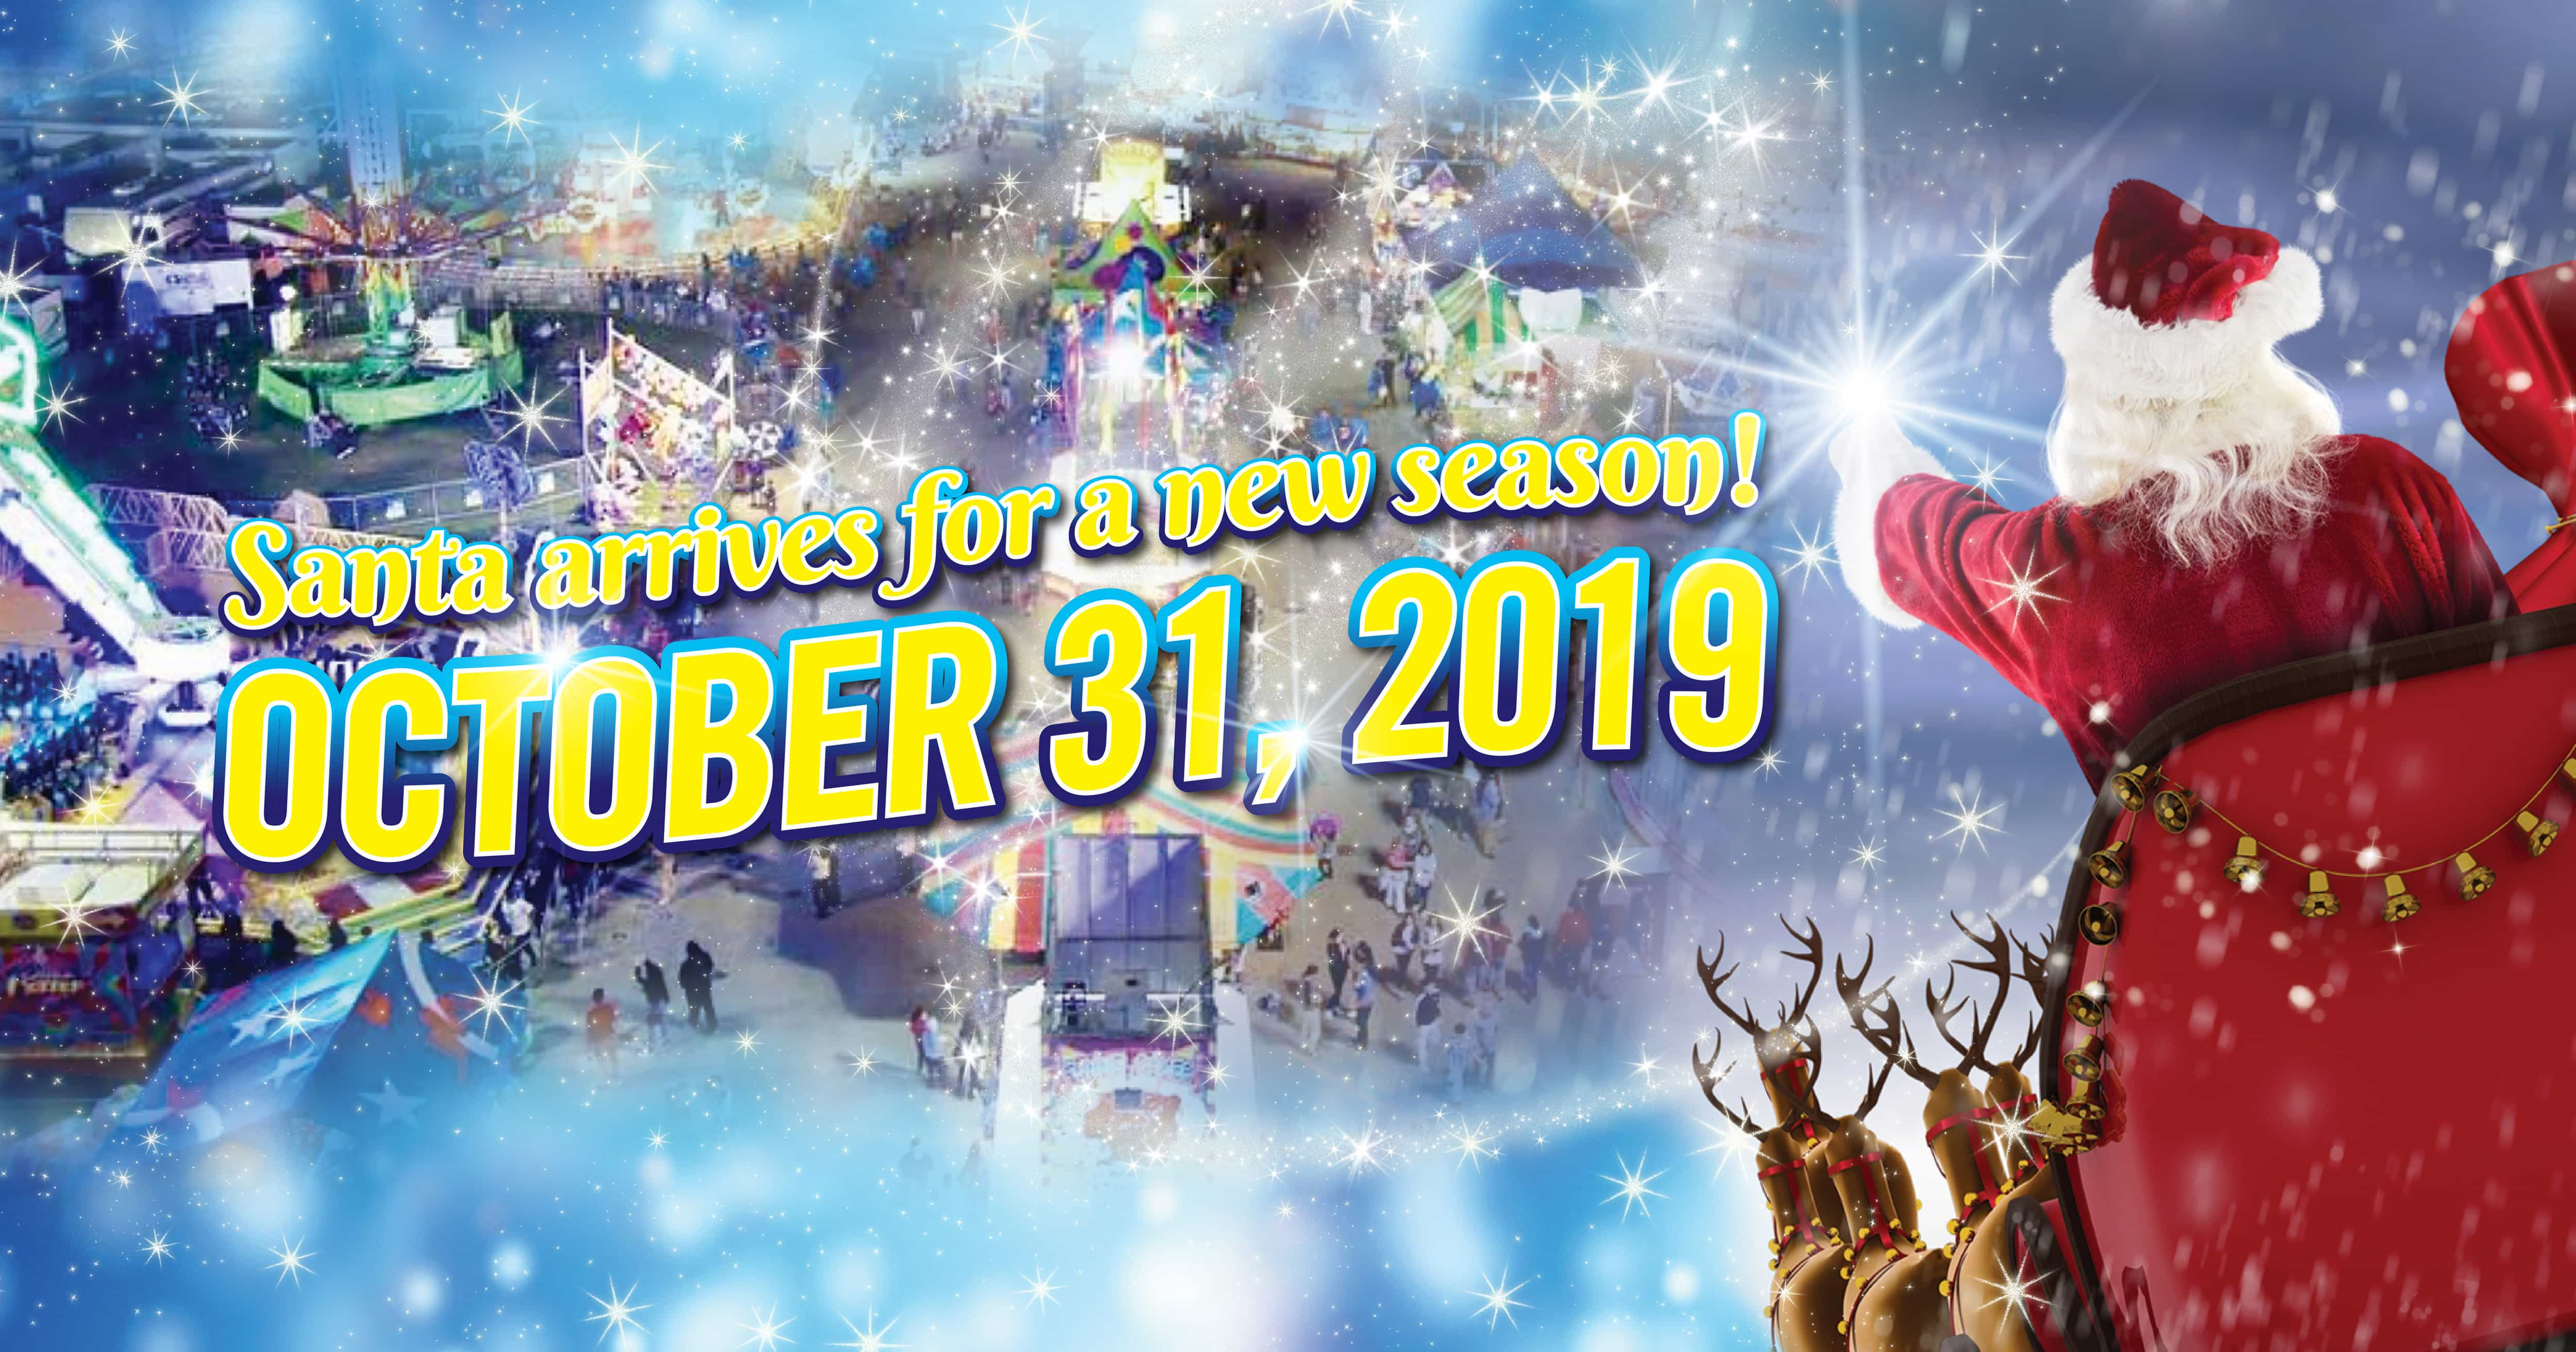 Santa's Enchanted Forest | World's Largest Holiday Theme Park